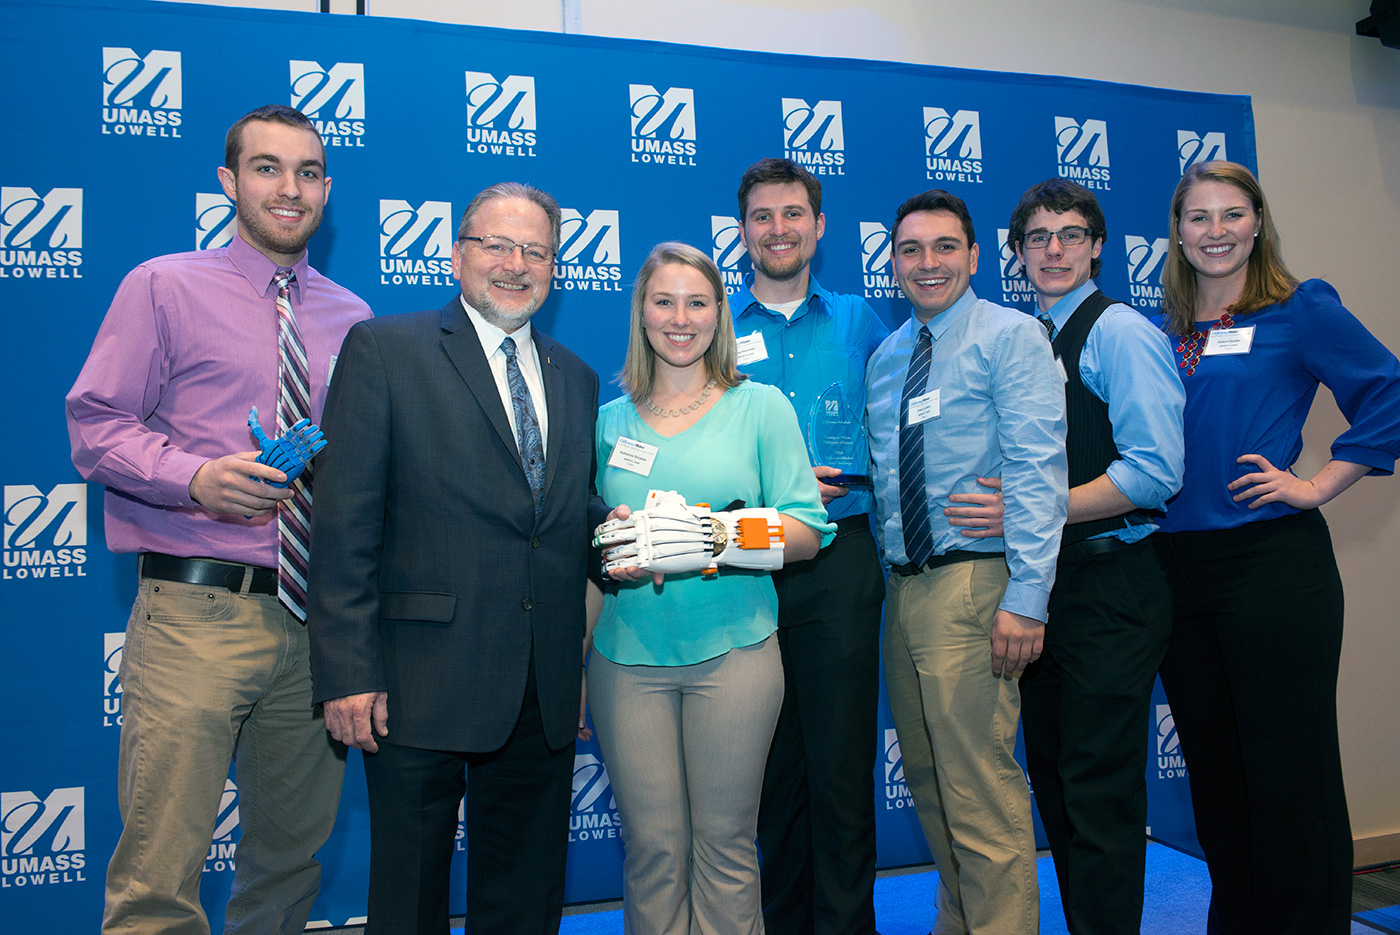 Assoc. Vice Chancellor for Entrepreneurship & Economic Development Steve Tello, second from left, poses with the eNABLE Lowell team after its campuswide DifferenceMaker Idea Challenge win in 2016.